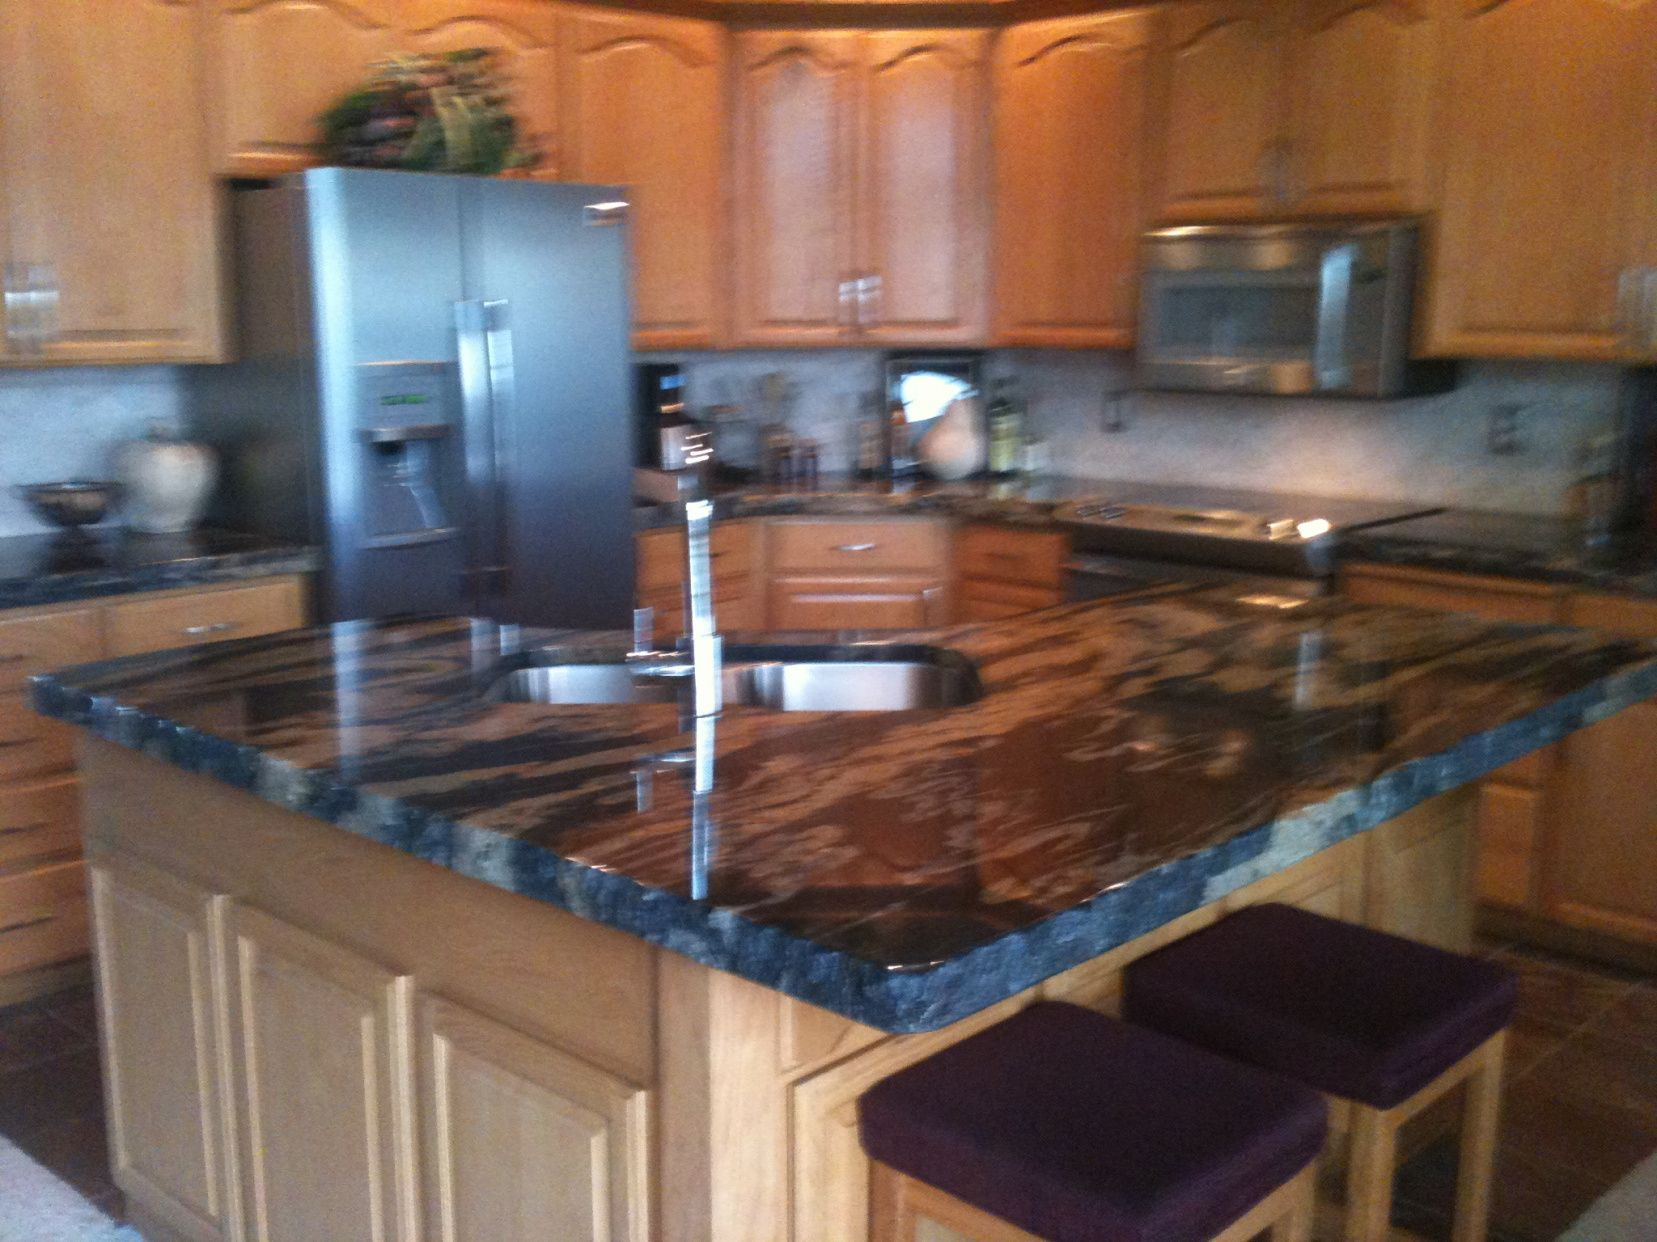 99 Granite Countertops Grants P Oregon Remodeling Ideas For Kitchens Check More At Http